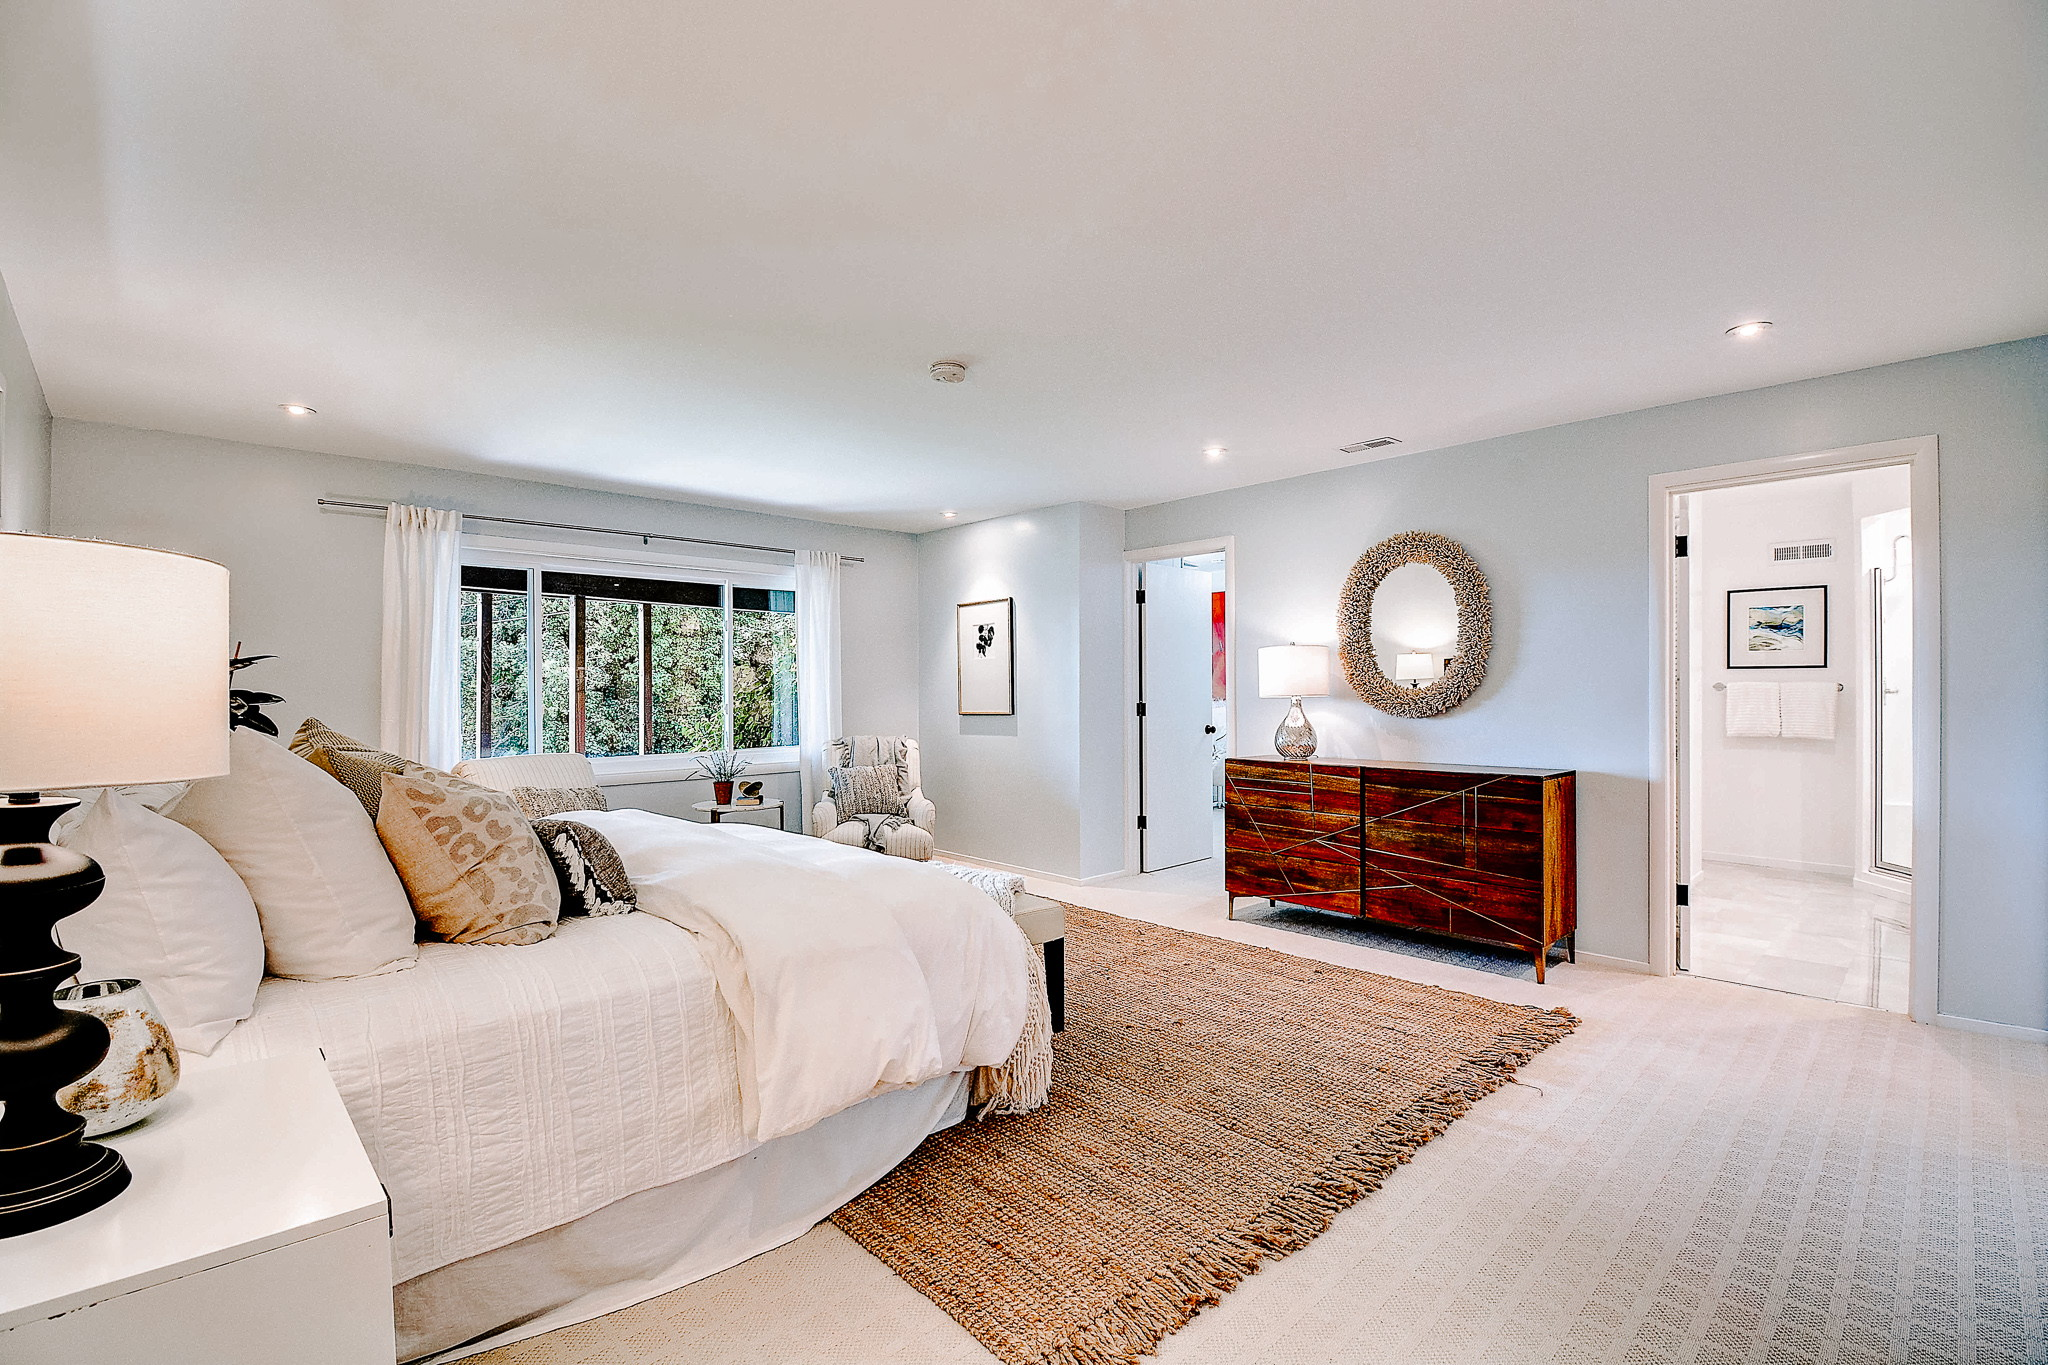 210 Bretano Way-37Greenbrae Real Estate - Listed by Team Own Marin County .jpg